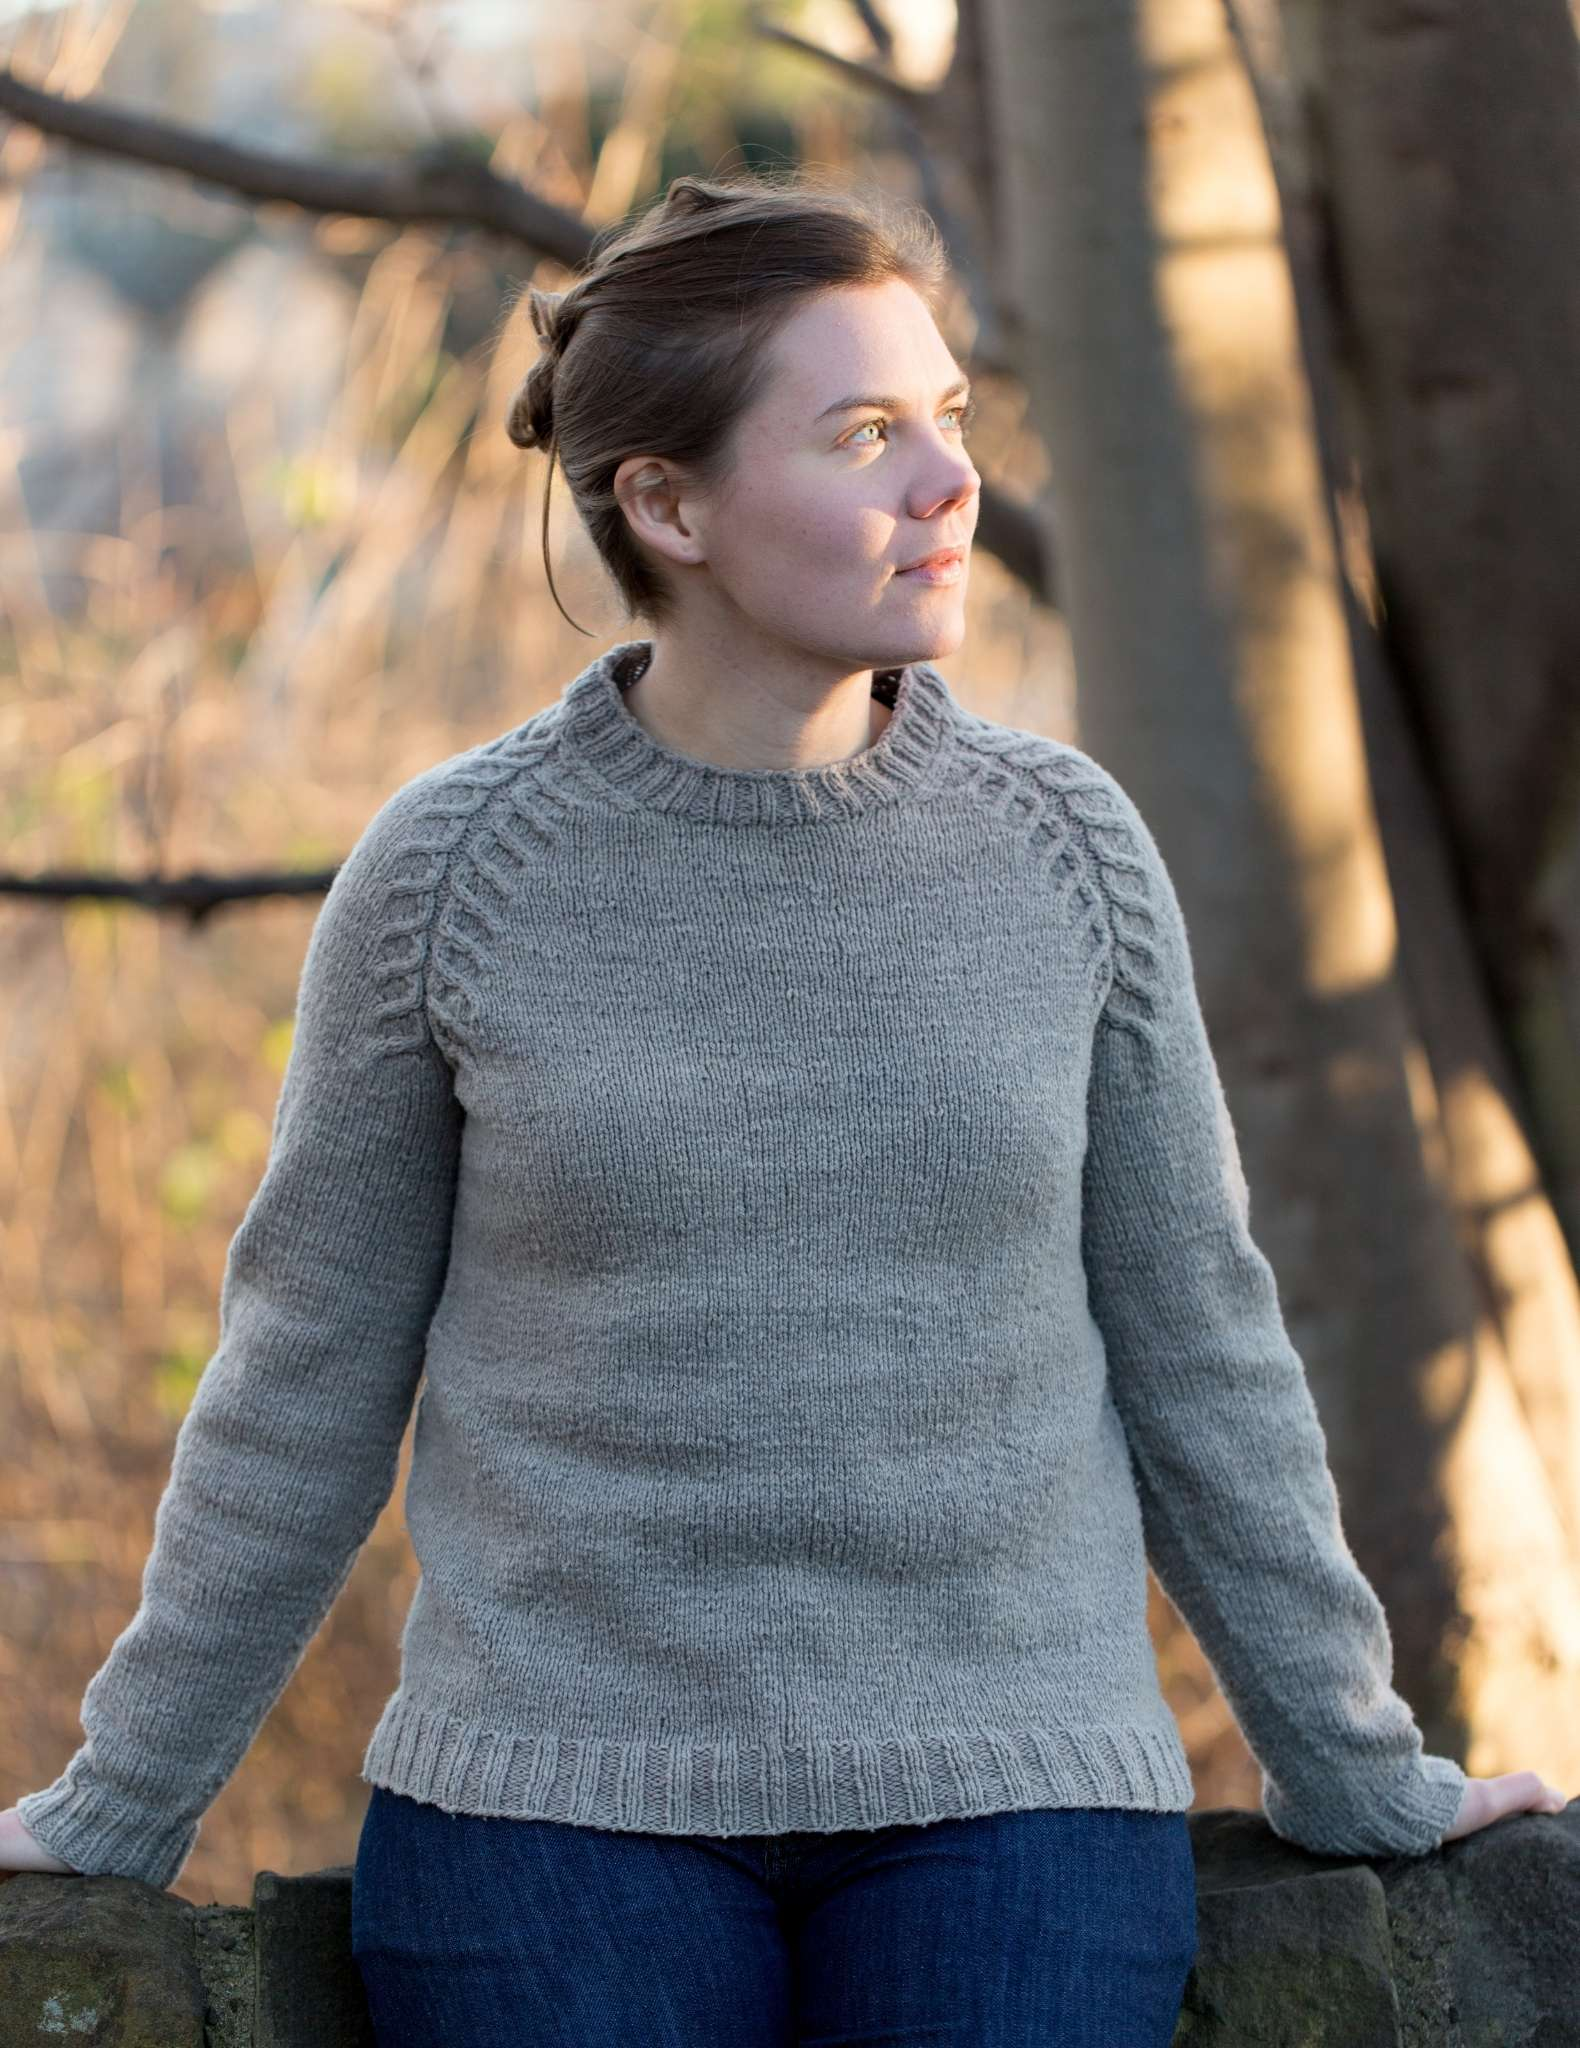 A white woman with tied back brown hair stands outdoors wearing a neutral plain sweater with cables on the shoulders.